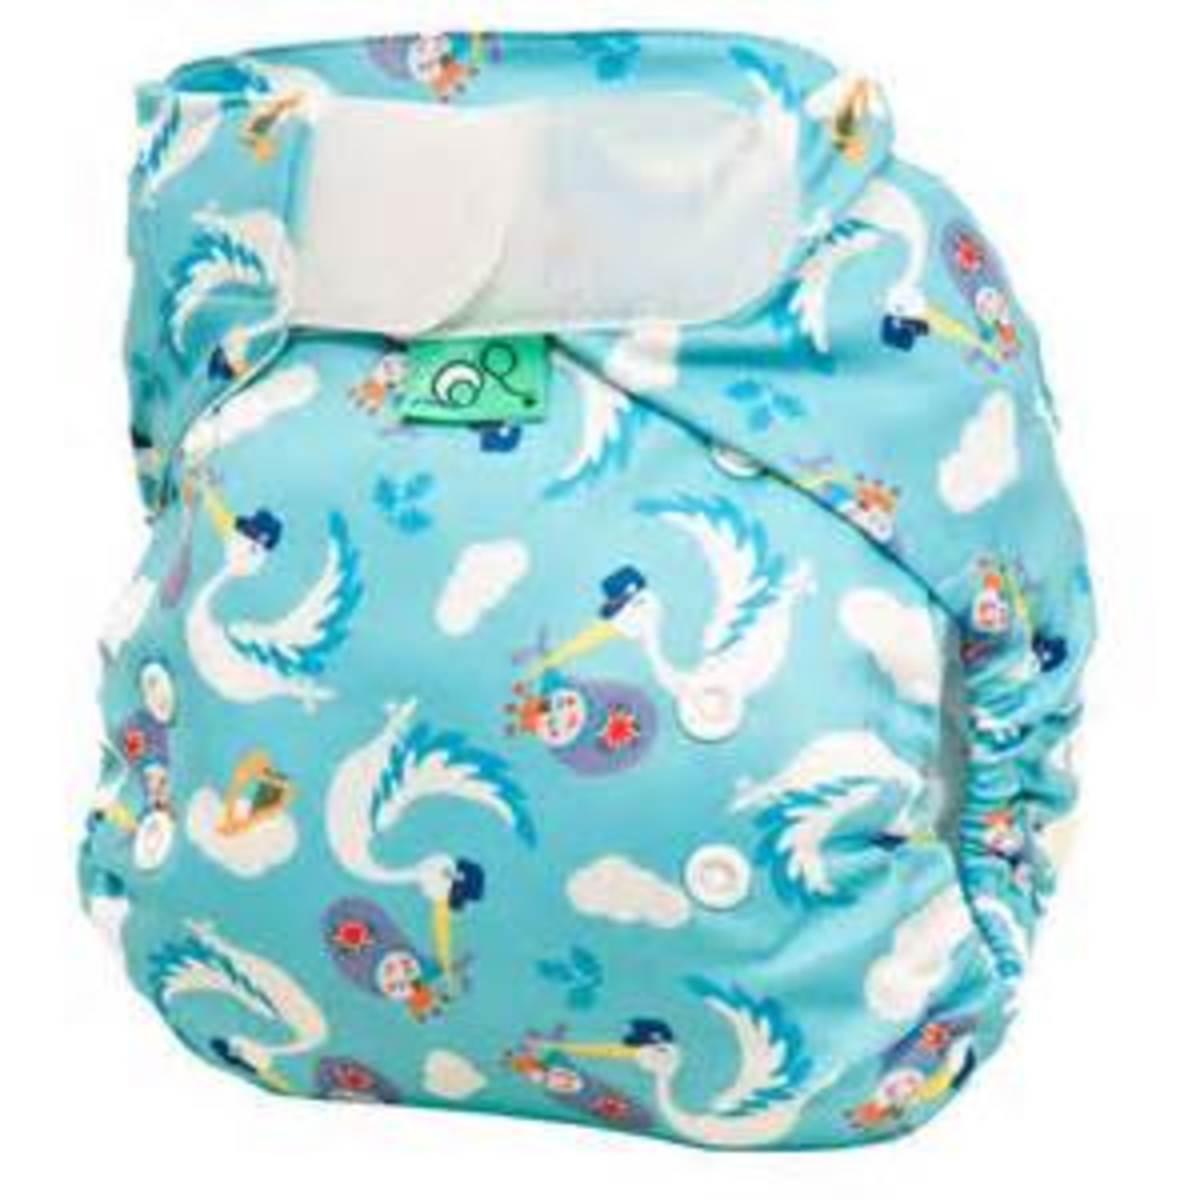 Tots Bots Royal Flush Print Diaper